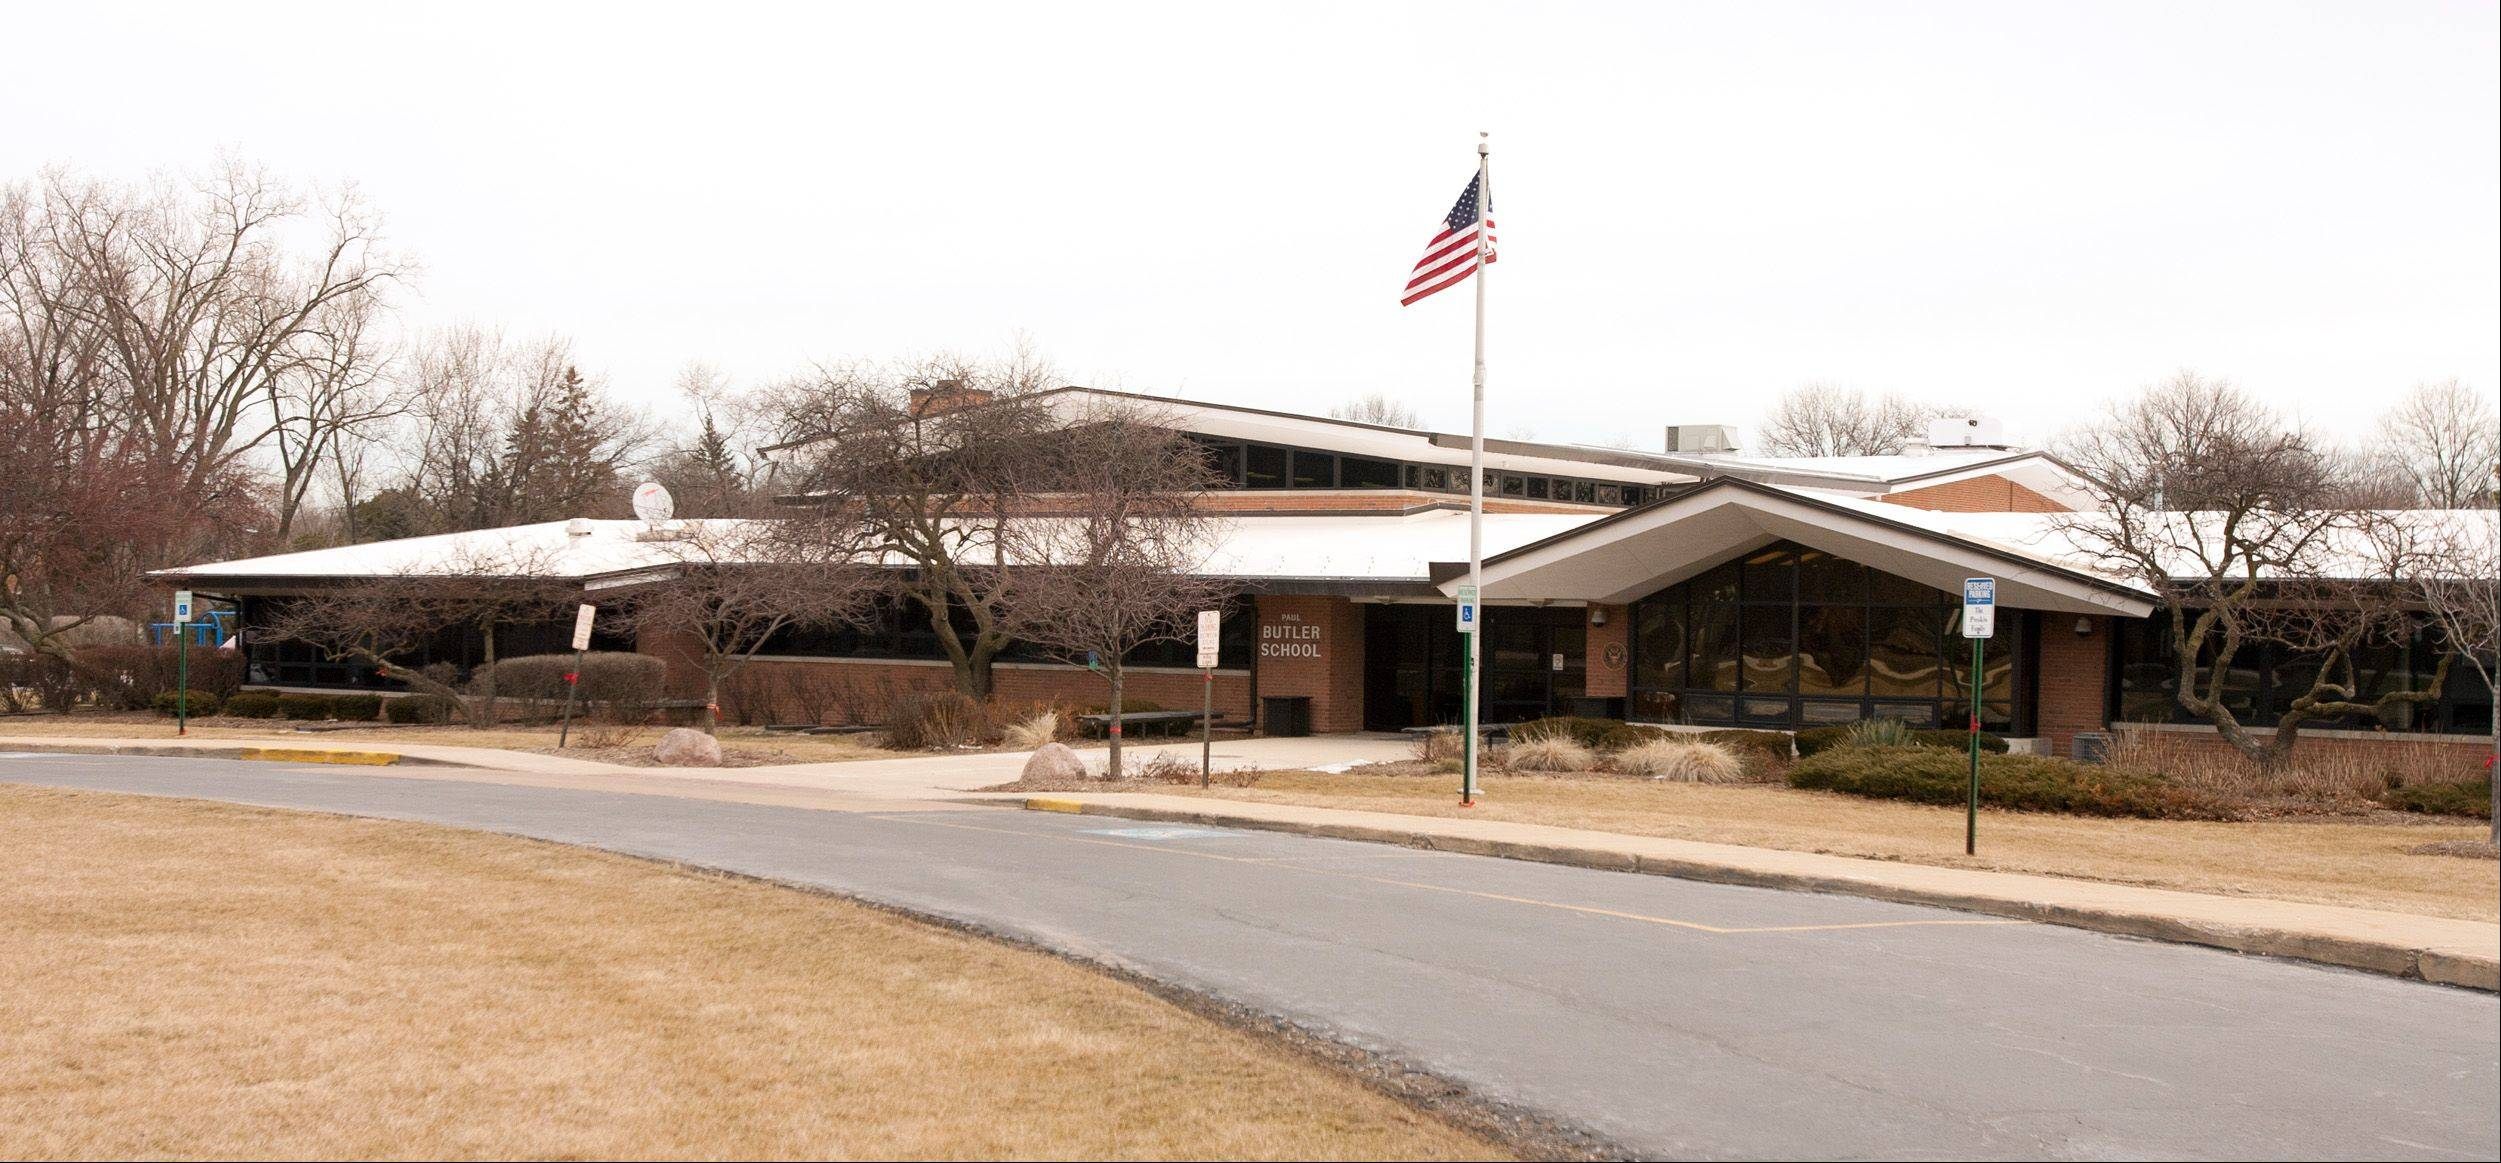 Butler Junior High, built in 1958, is one of two schools that could be consolidated into one new facility under a plan for which District 53 is seeking voter approval.